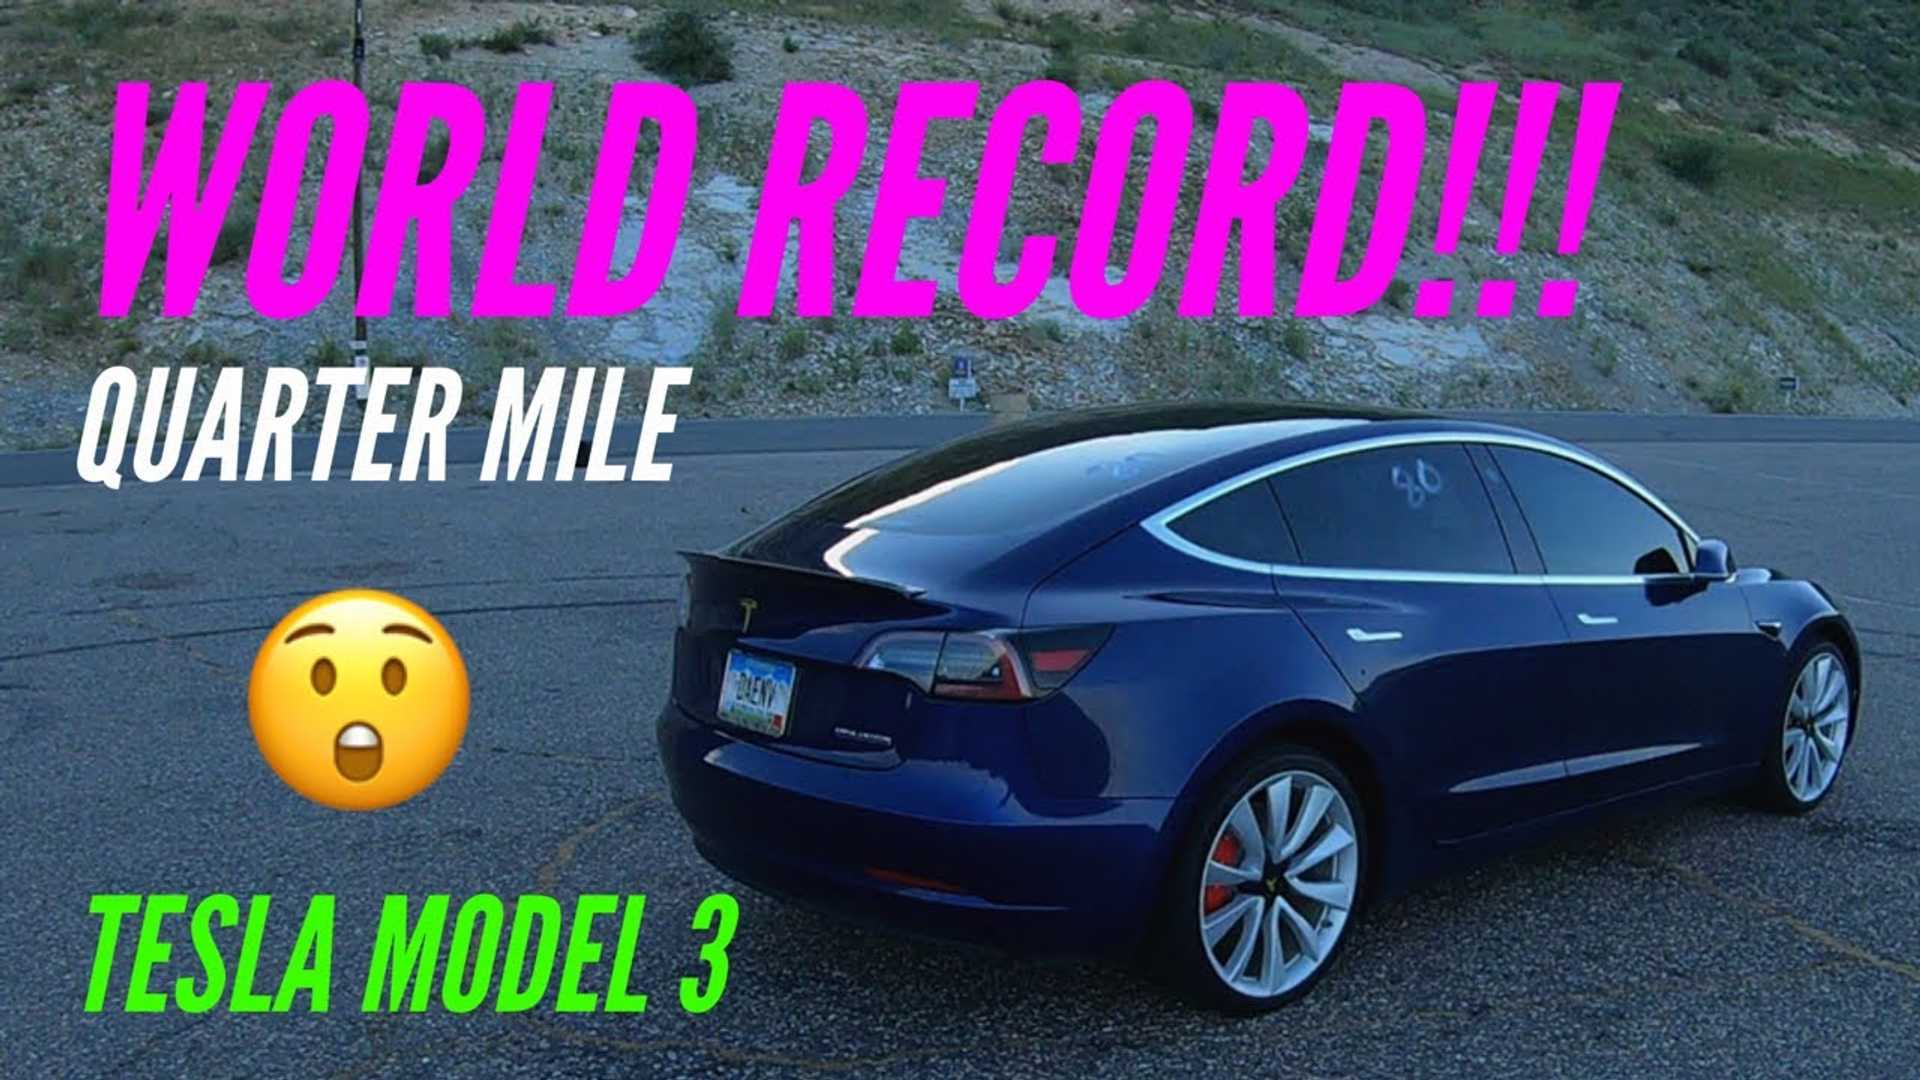 Watch Tesla Model 3 Set New 1 4 Mile World Record Video